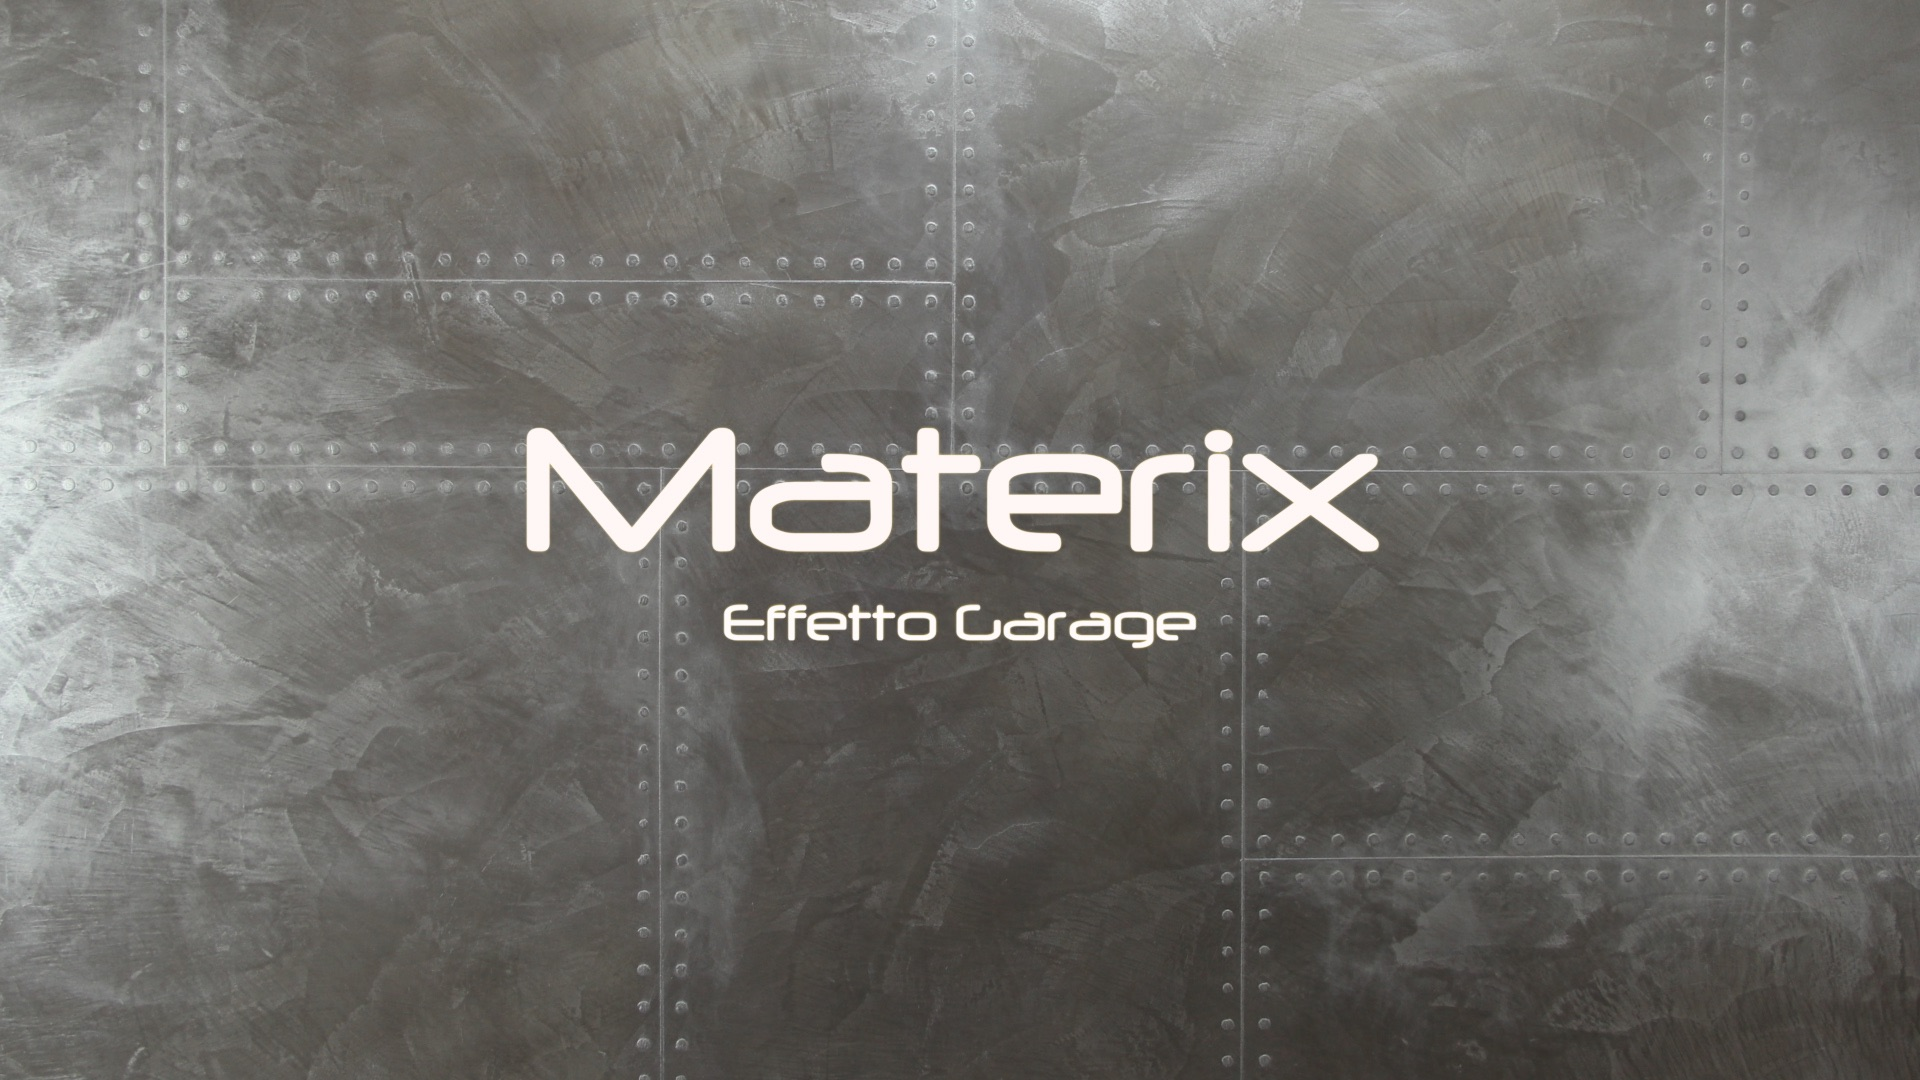 Materix effetto garage stucco decorativo naturale - Stucco naturale ...